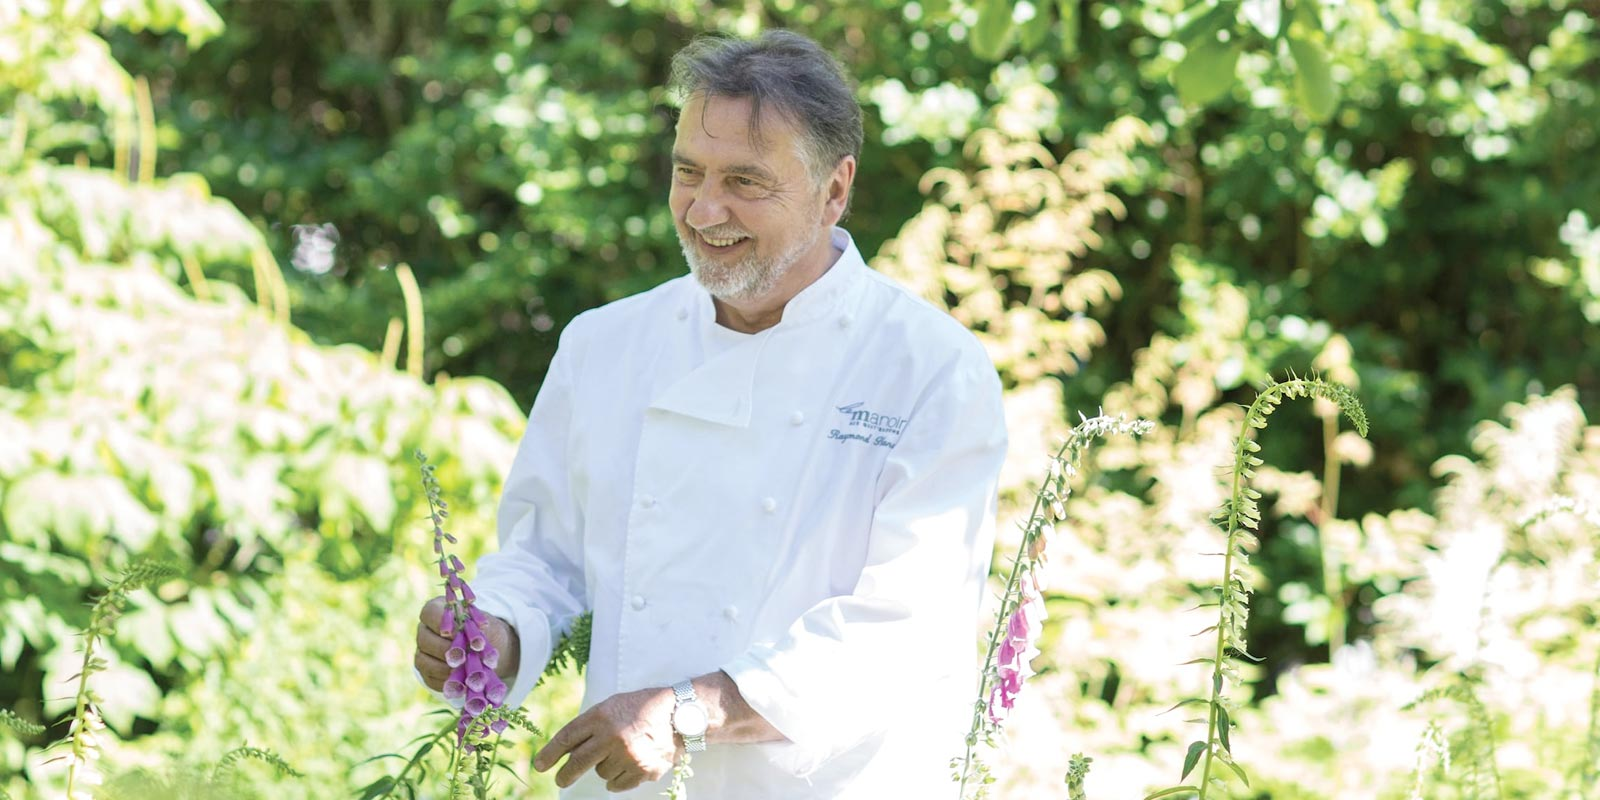 The Dinner Hosted by Raymond Blanc